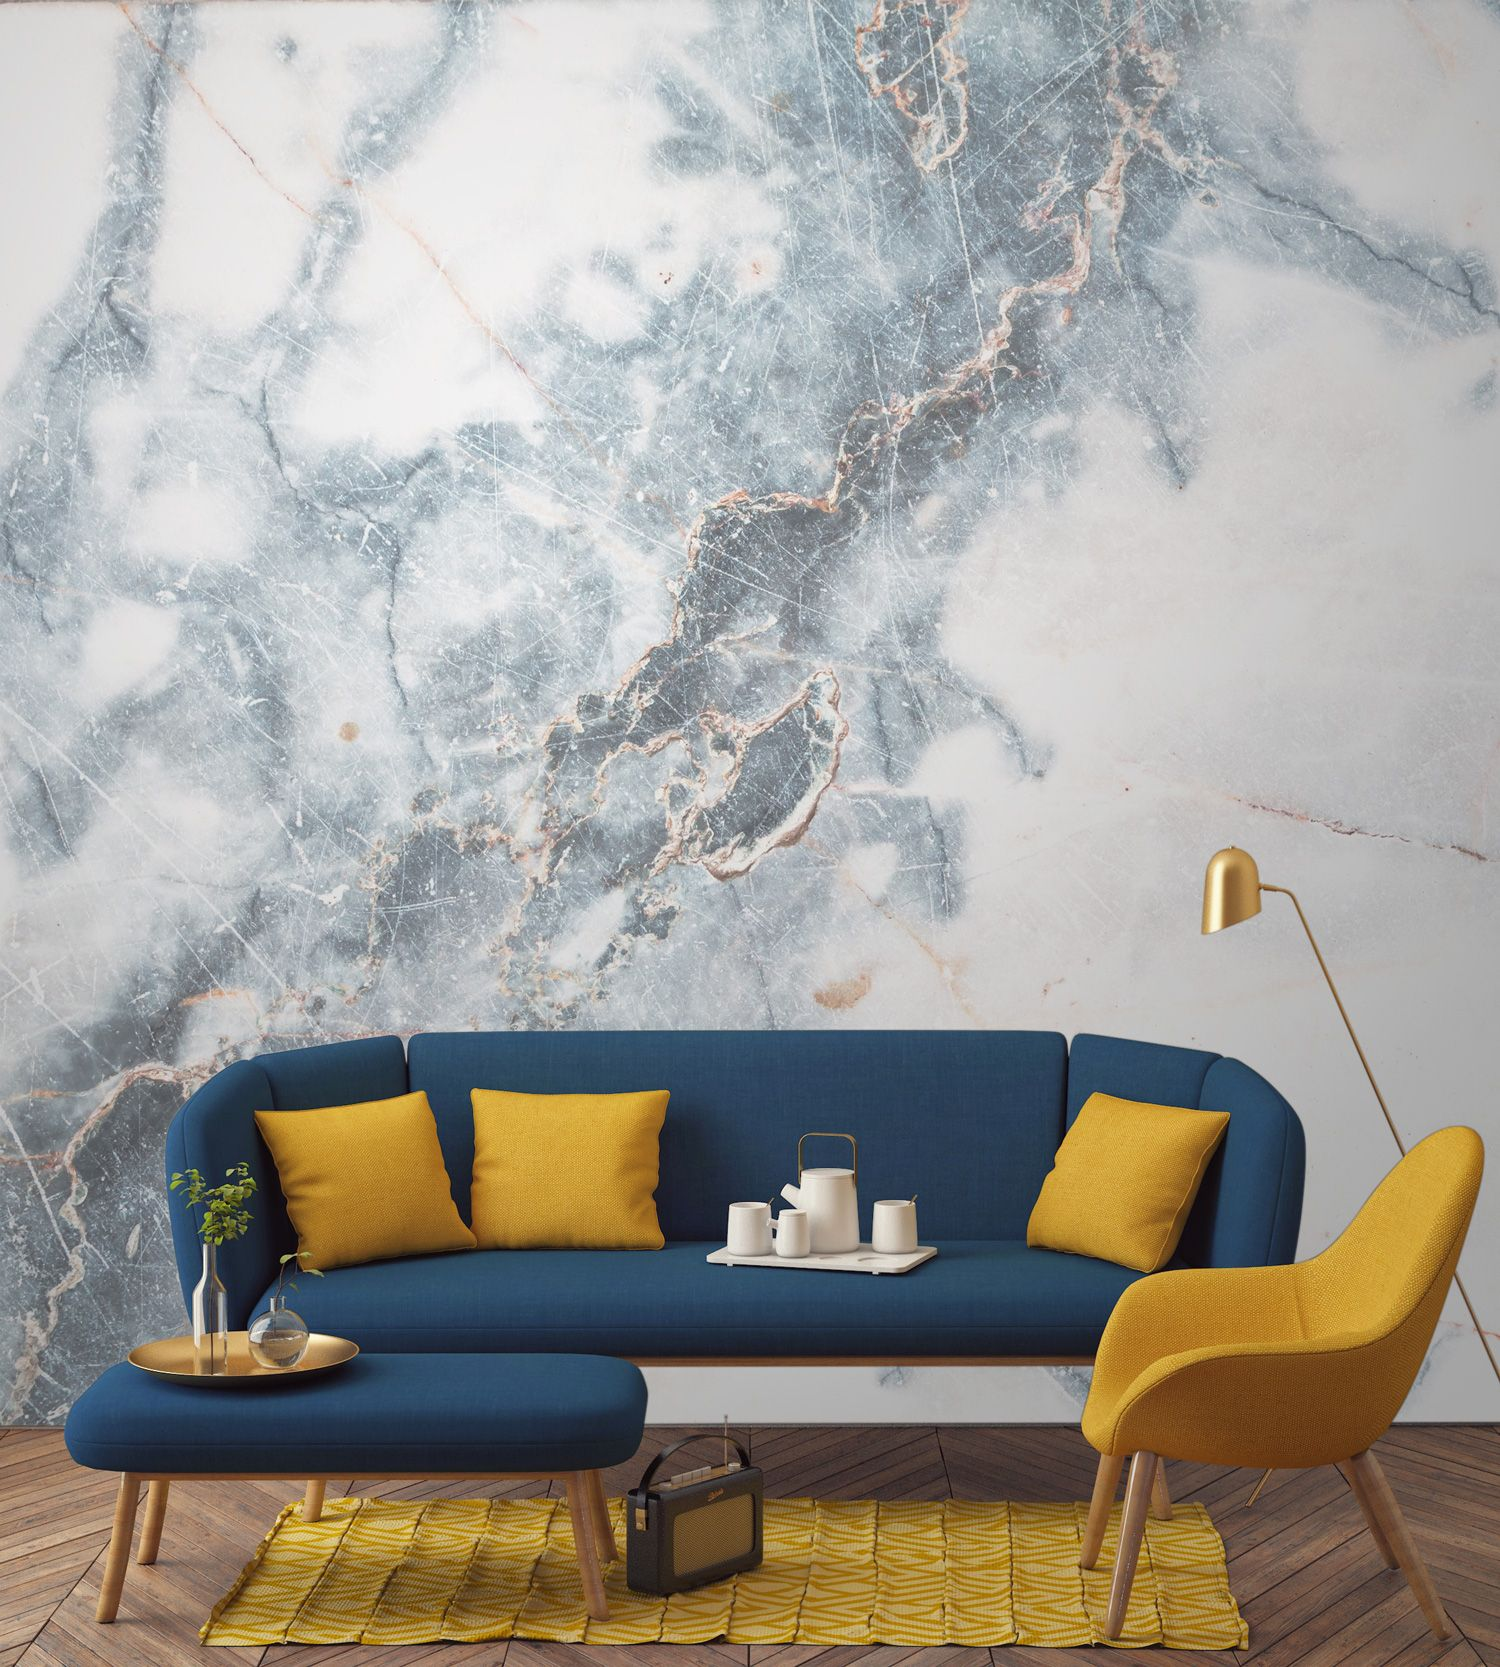 The Dope New Interiors Trend You Need To Embrace | Stylight ...